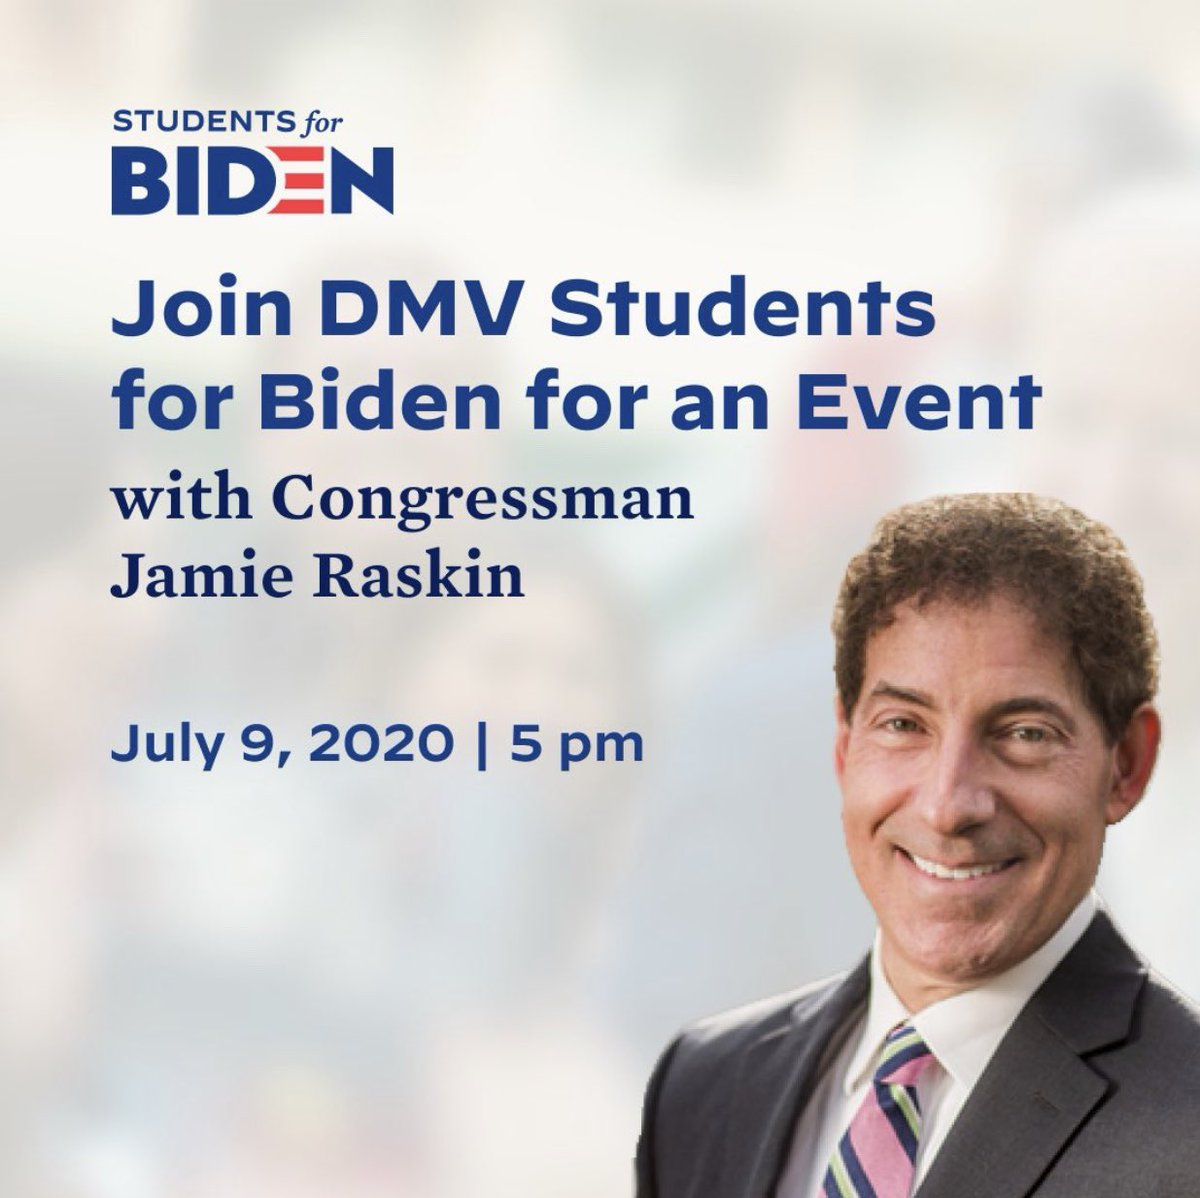 Join us and other DMV colleges in hearing from Congressman Jamie Raskin! He knows how important it is that Biden wins in November! pic.twitter.com/AUWOjfrRXJ